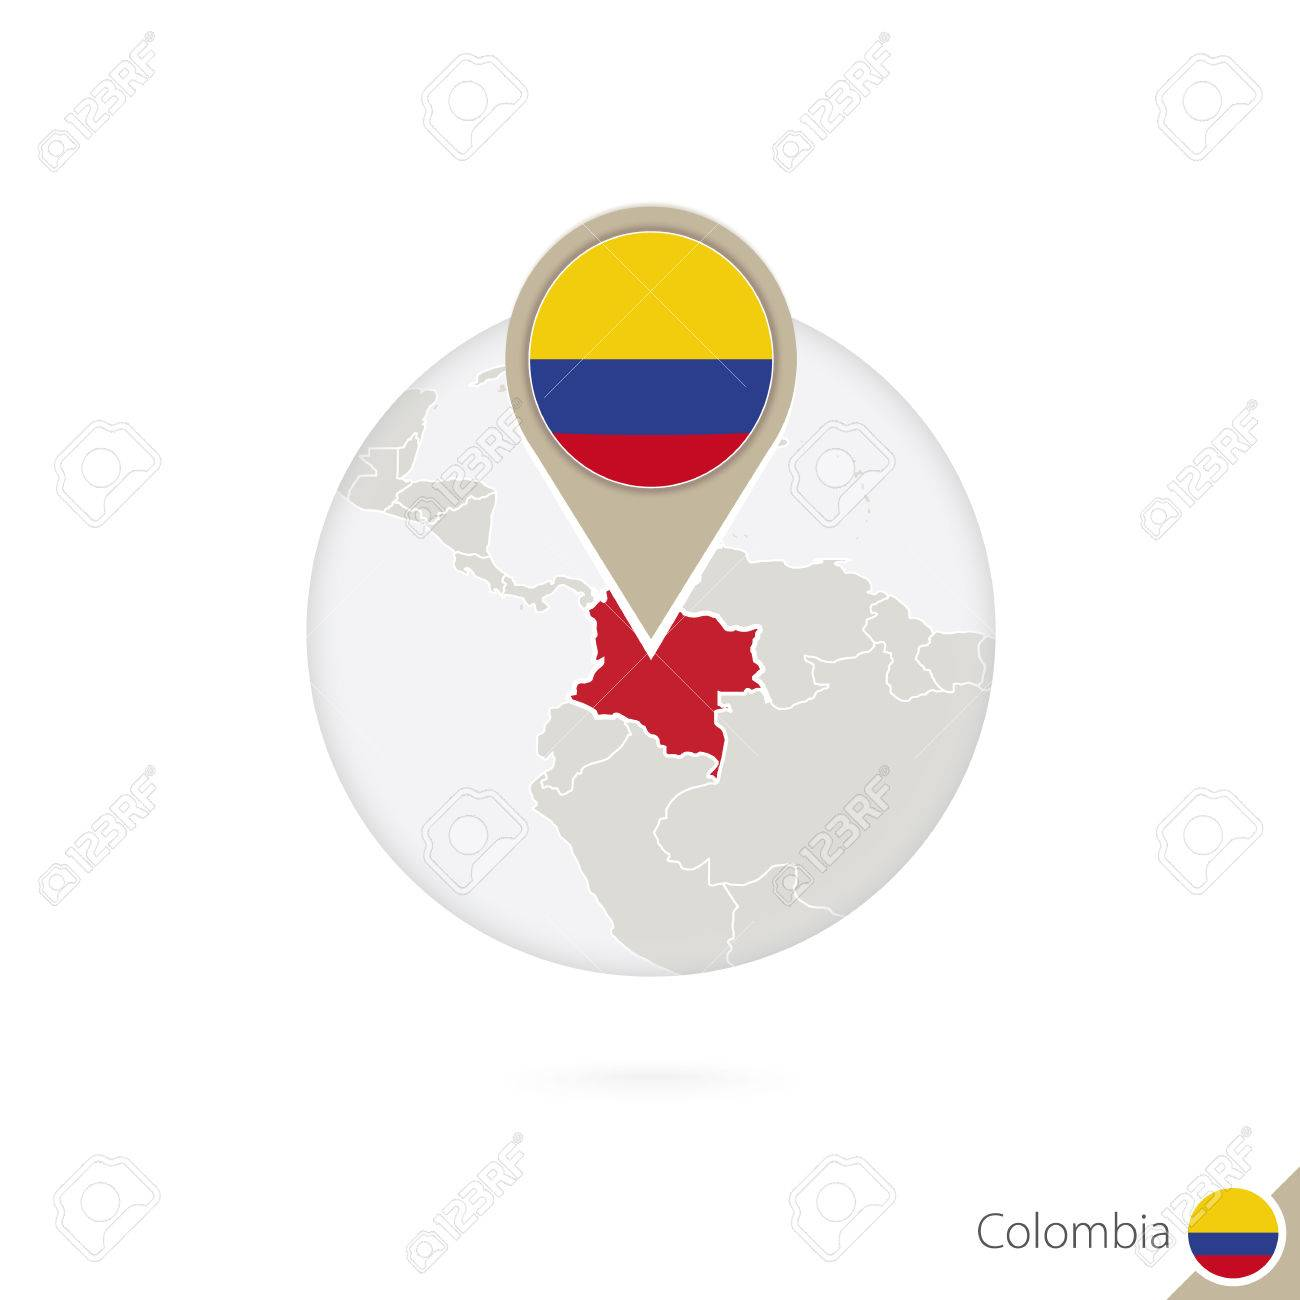 Colombia map and flag in circle. Map of Colombia, Colombia flag pin. Map of Colombia in the style of the globe. Vector Illustration. - 55212161